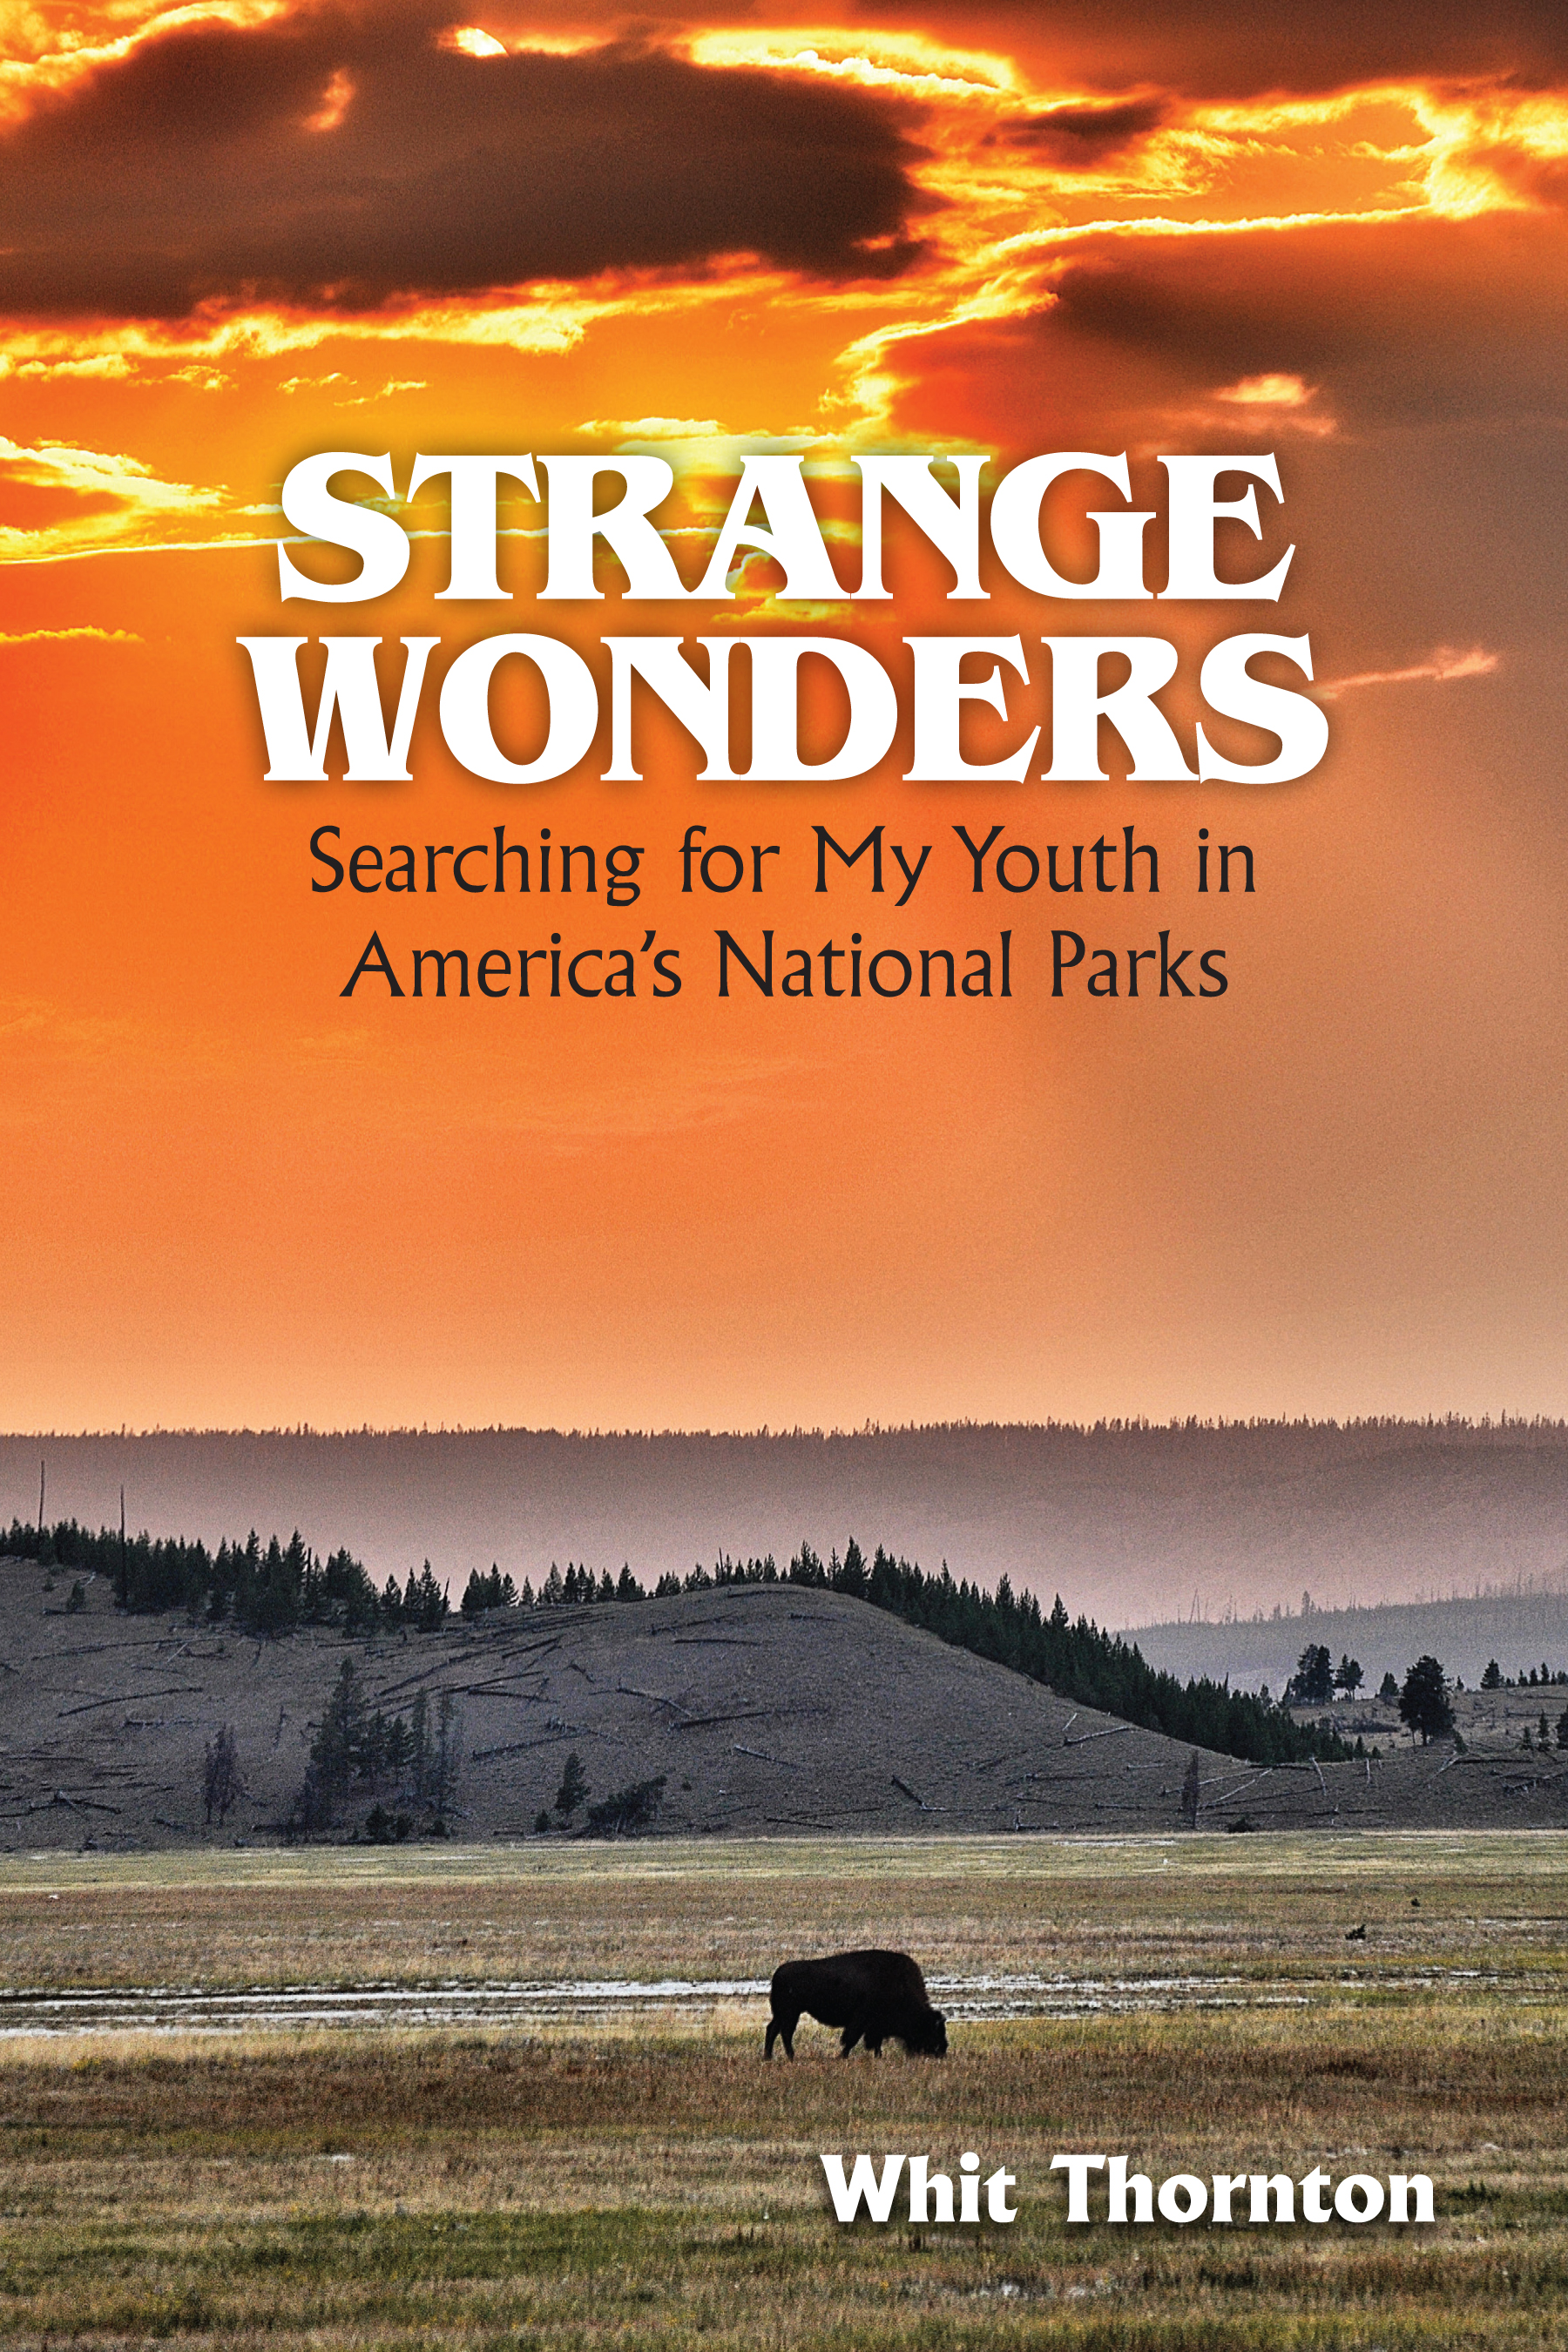 Strange Wonders:  Searching for My Youth in America's National Parks